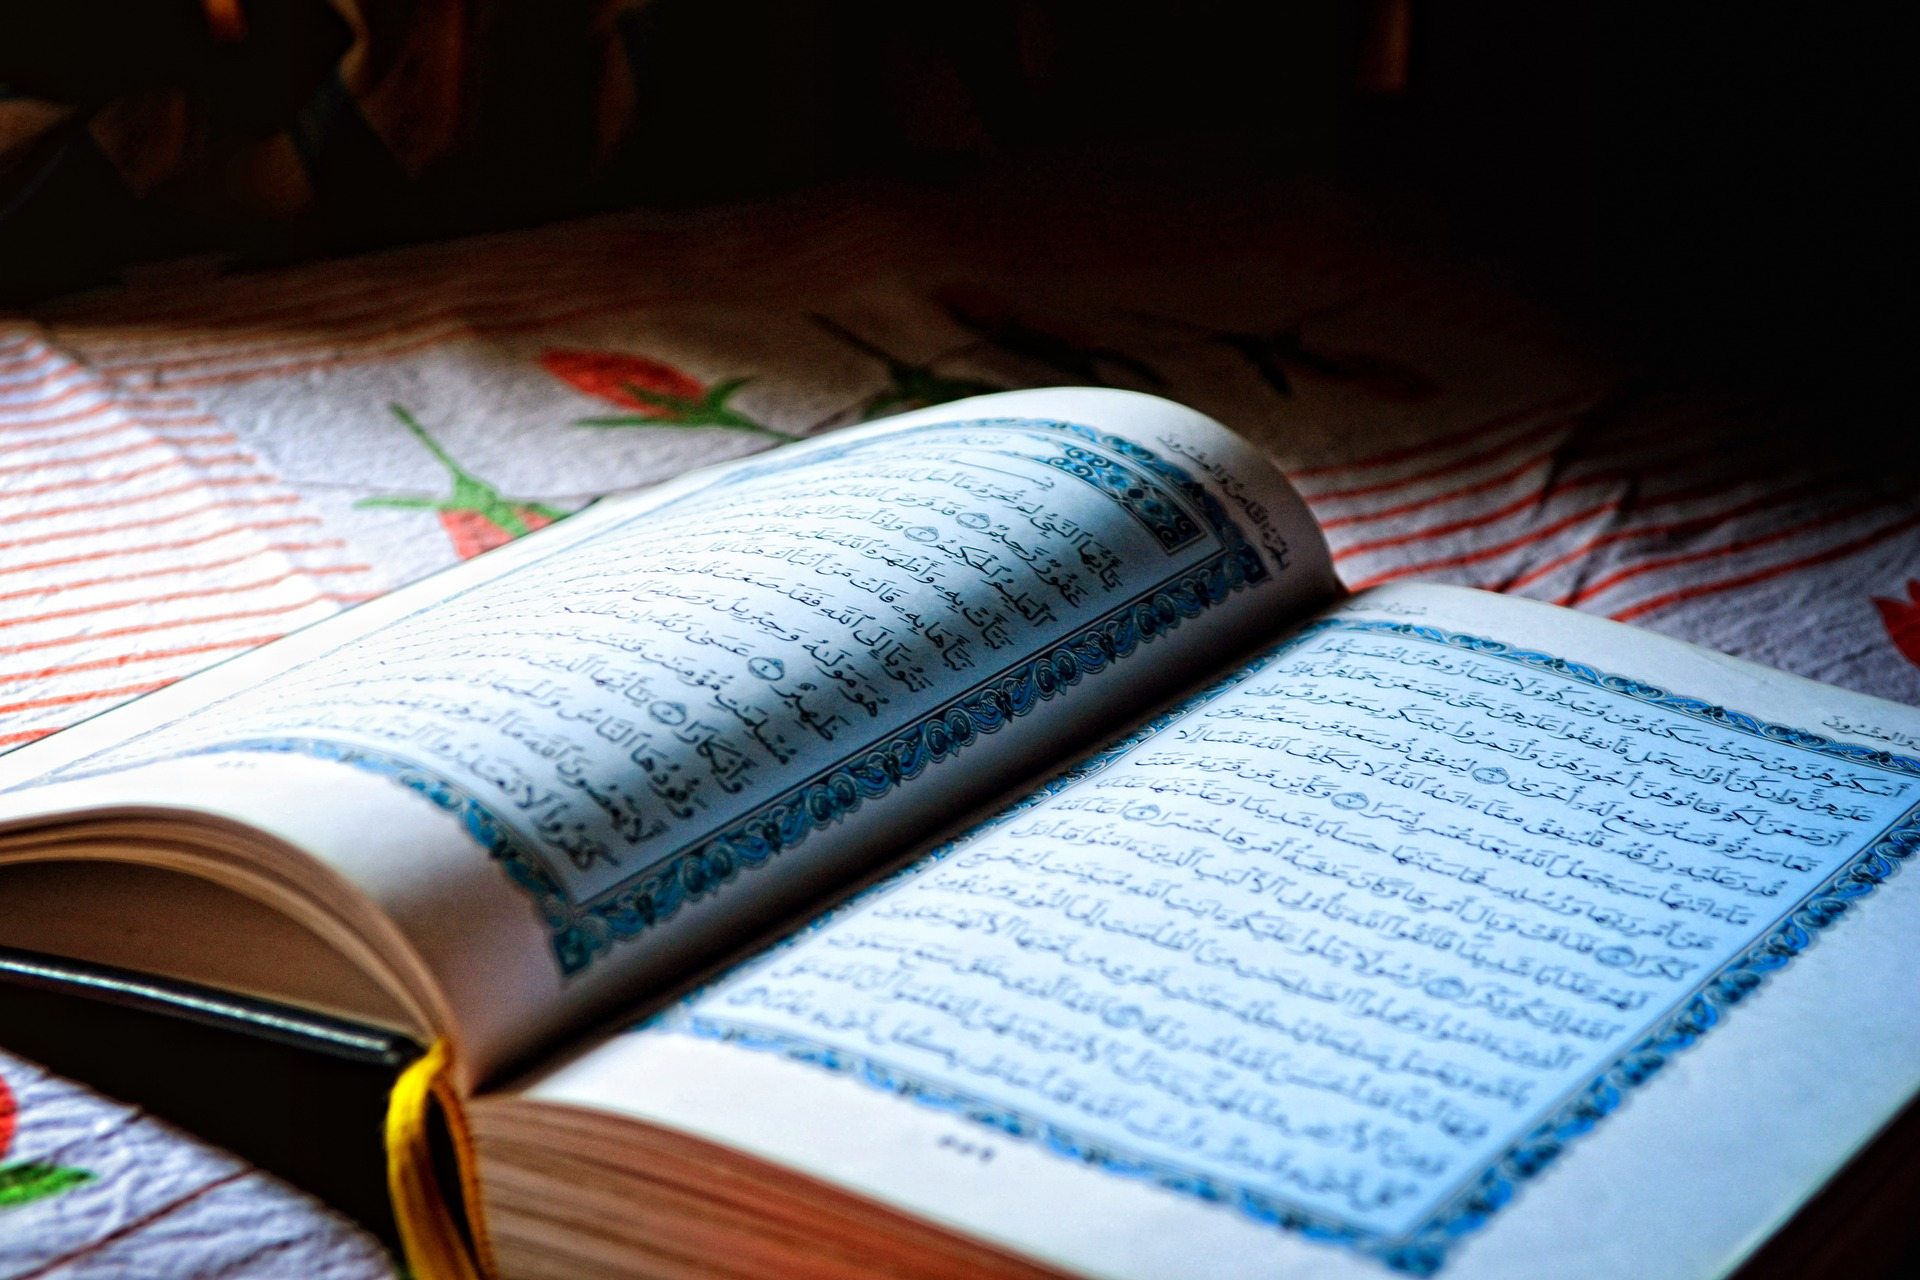 How Muslims Treat The Qur'an